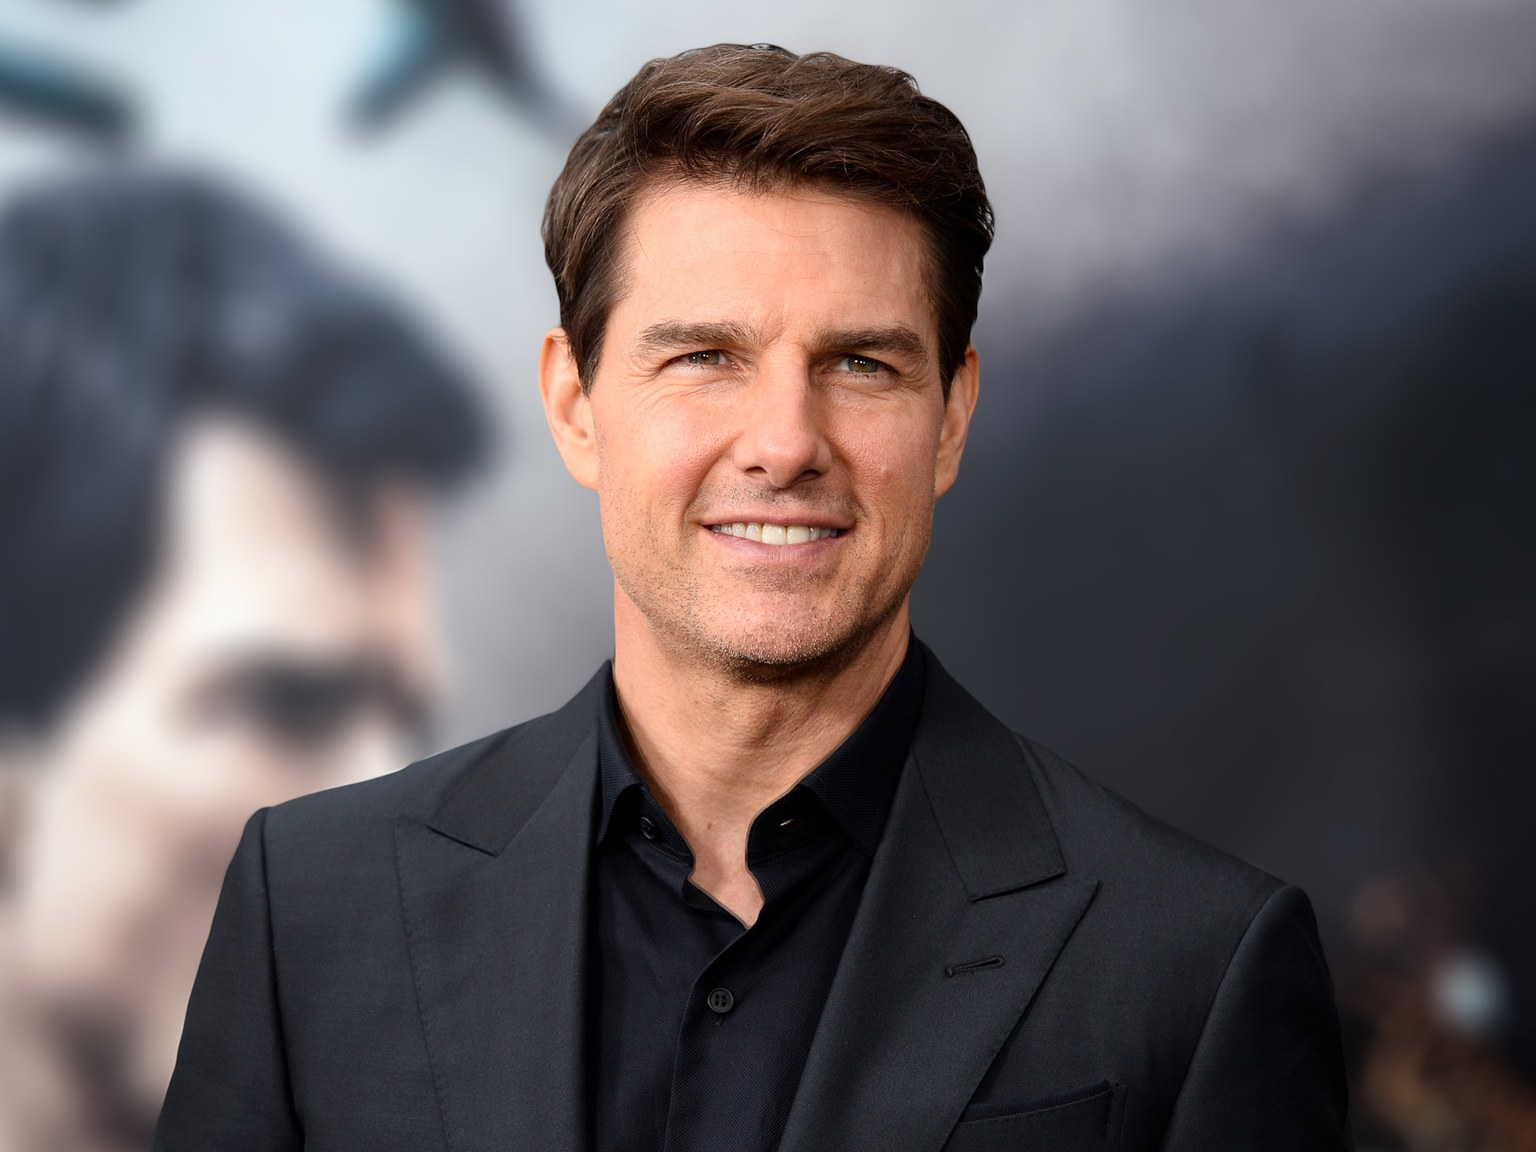 Tom Cruise Is 'Hesitant' To Find Love Again, Source Says ...